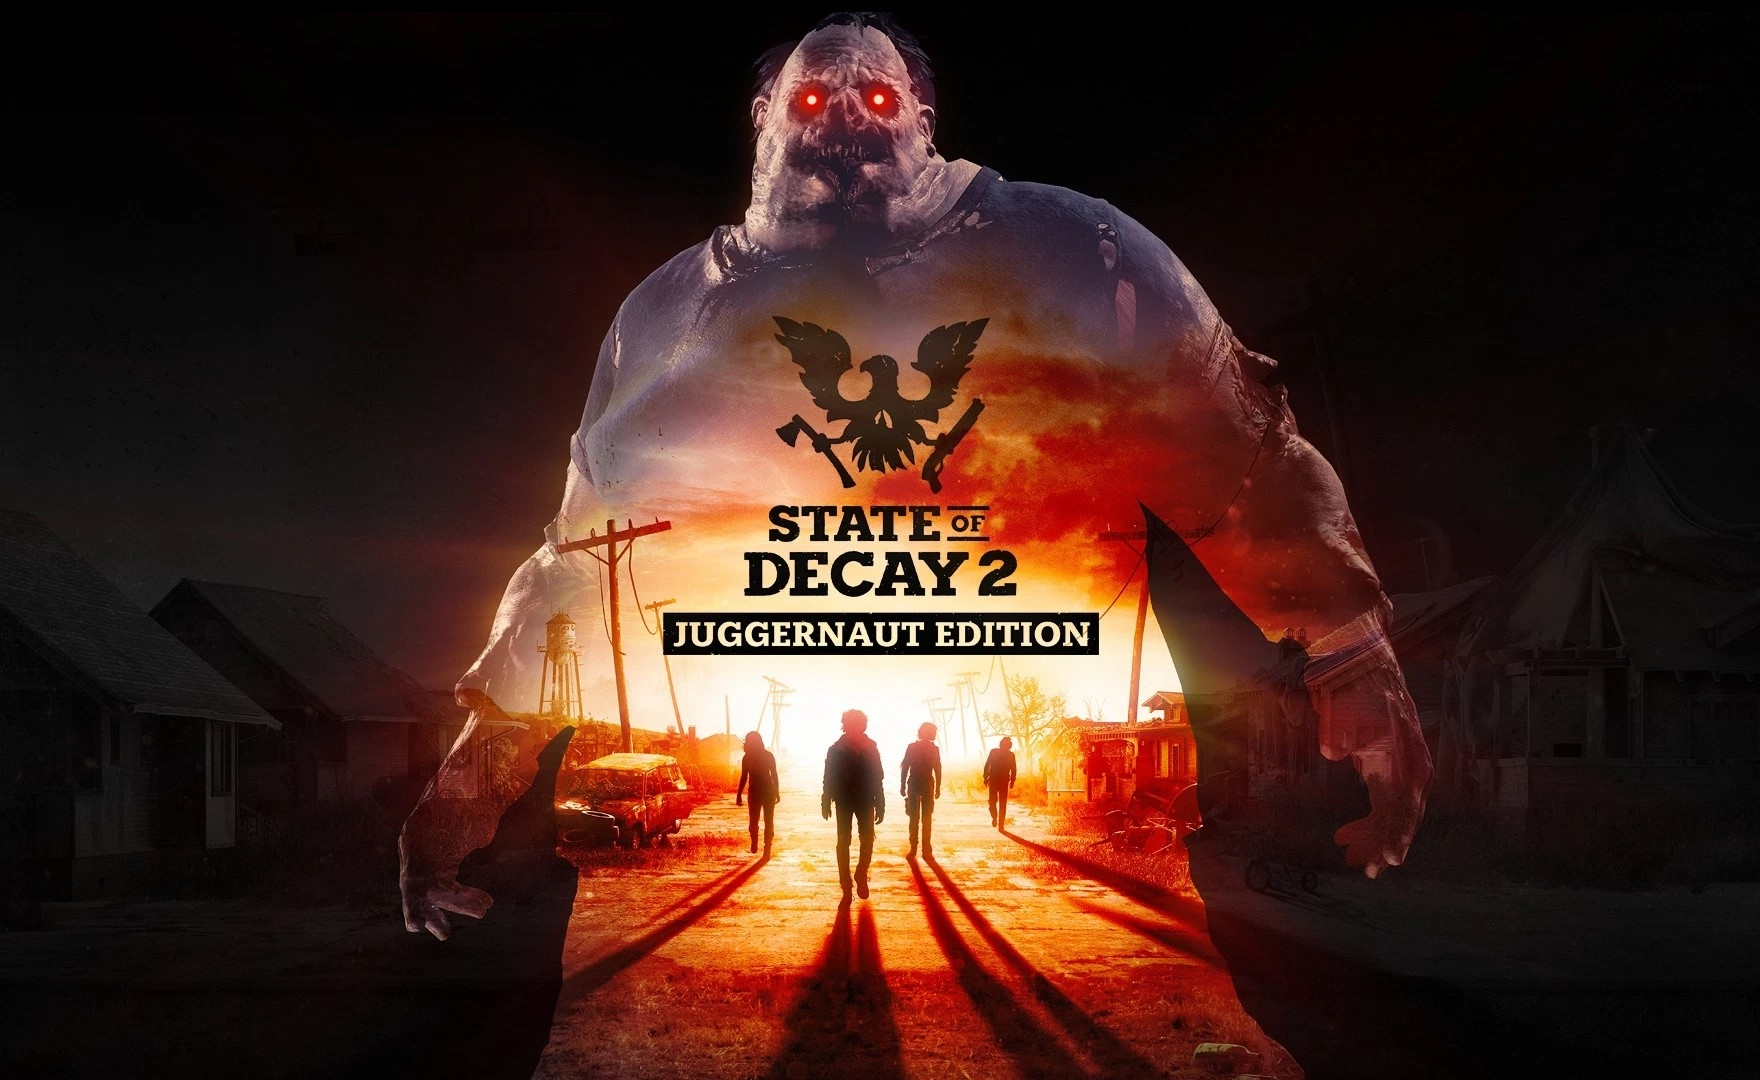 State of Decay 2 Juggernaut Edition ora disponibile su PC e Xbox One